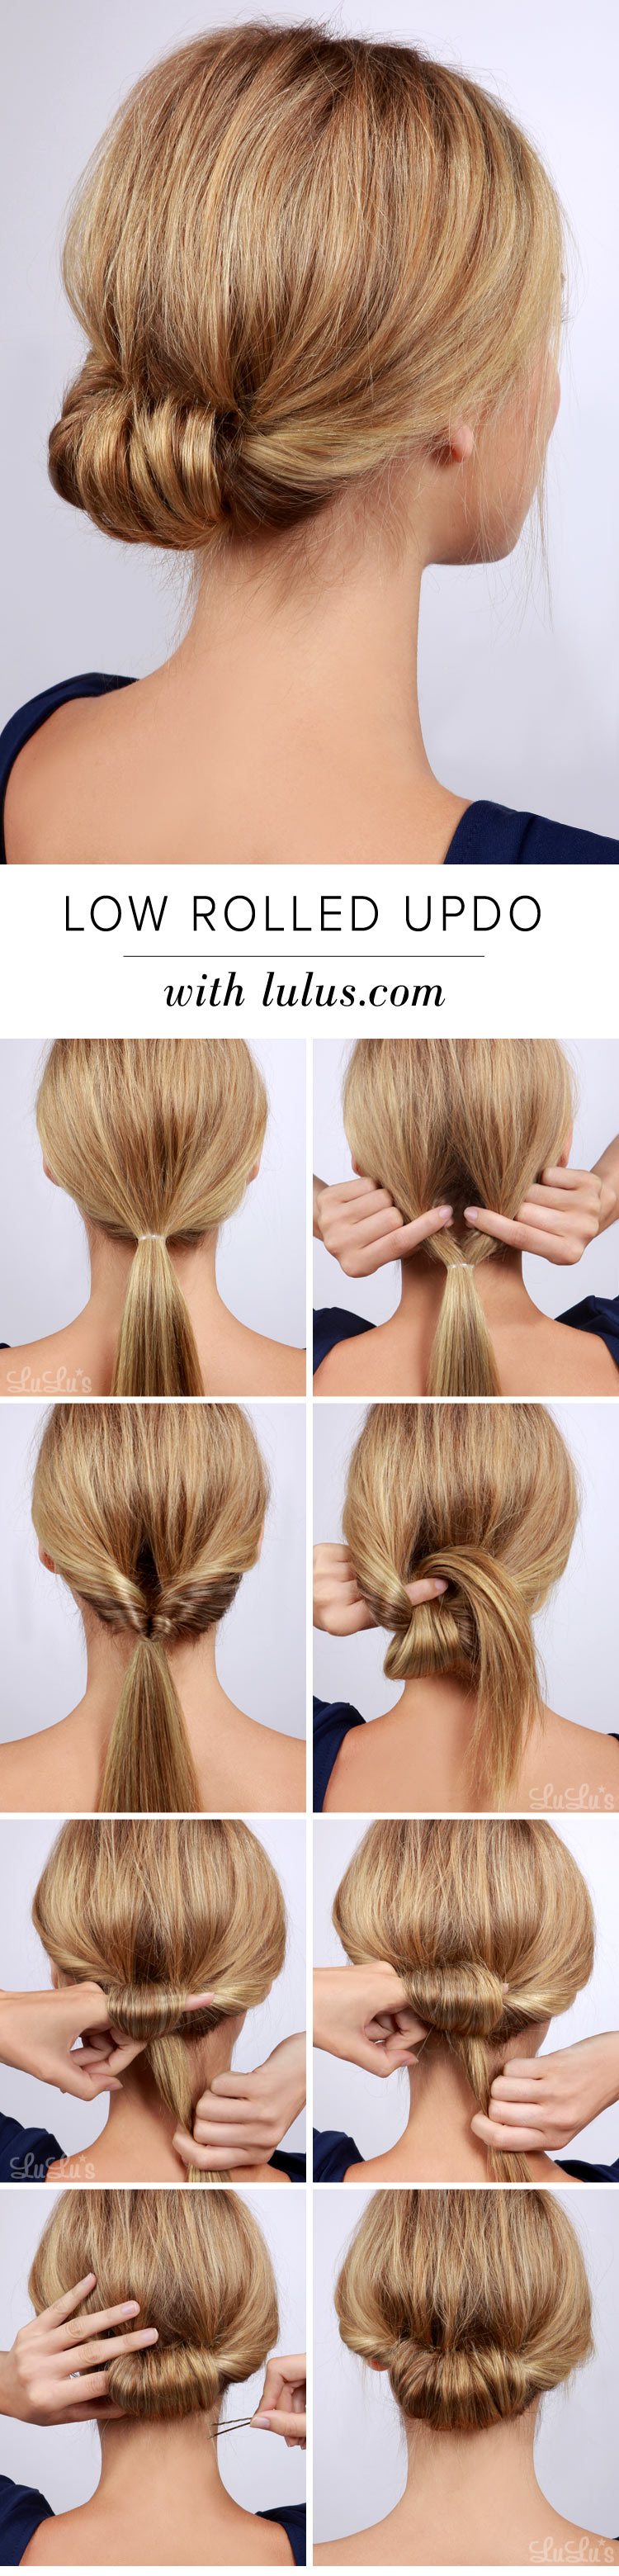 Lulus How To Low Rolled Updo Hair Tutorial Lulus Com Fashion Blog